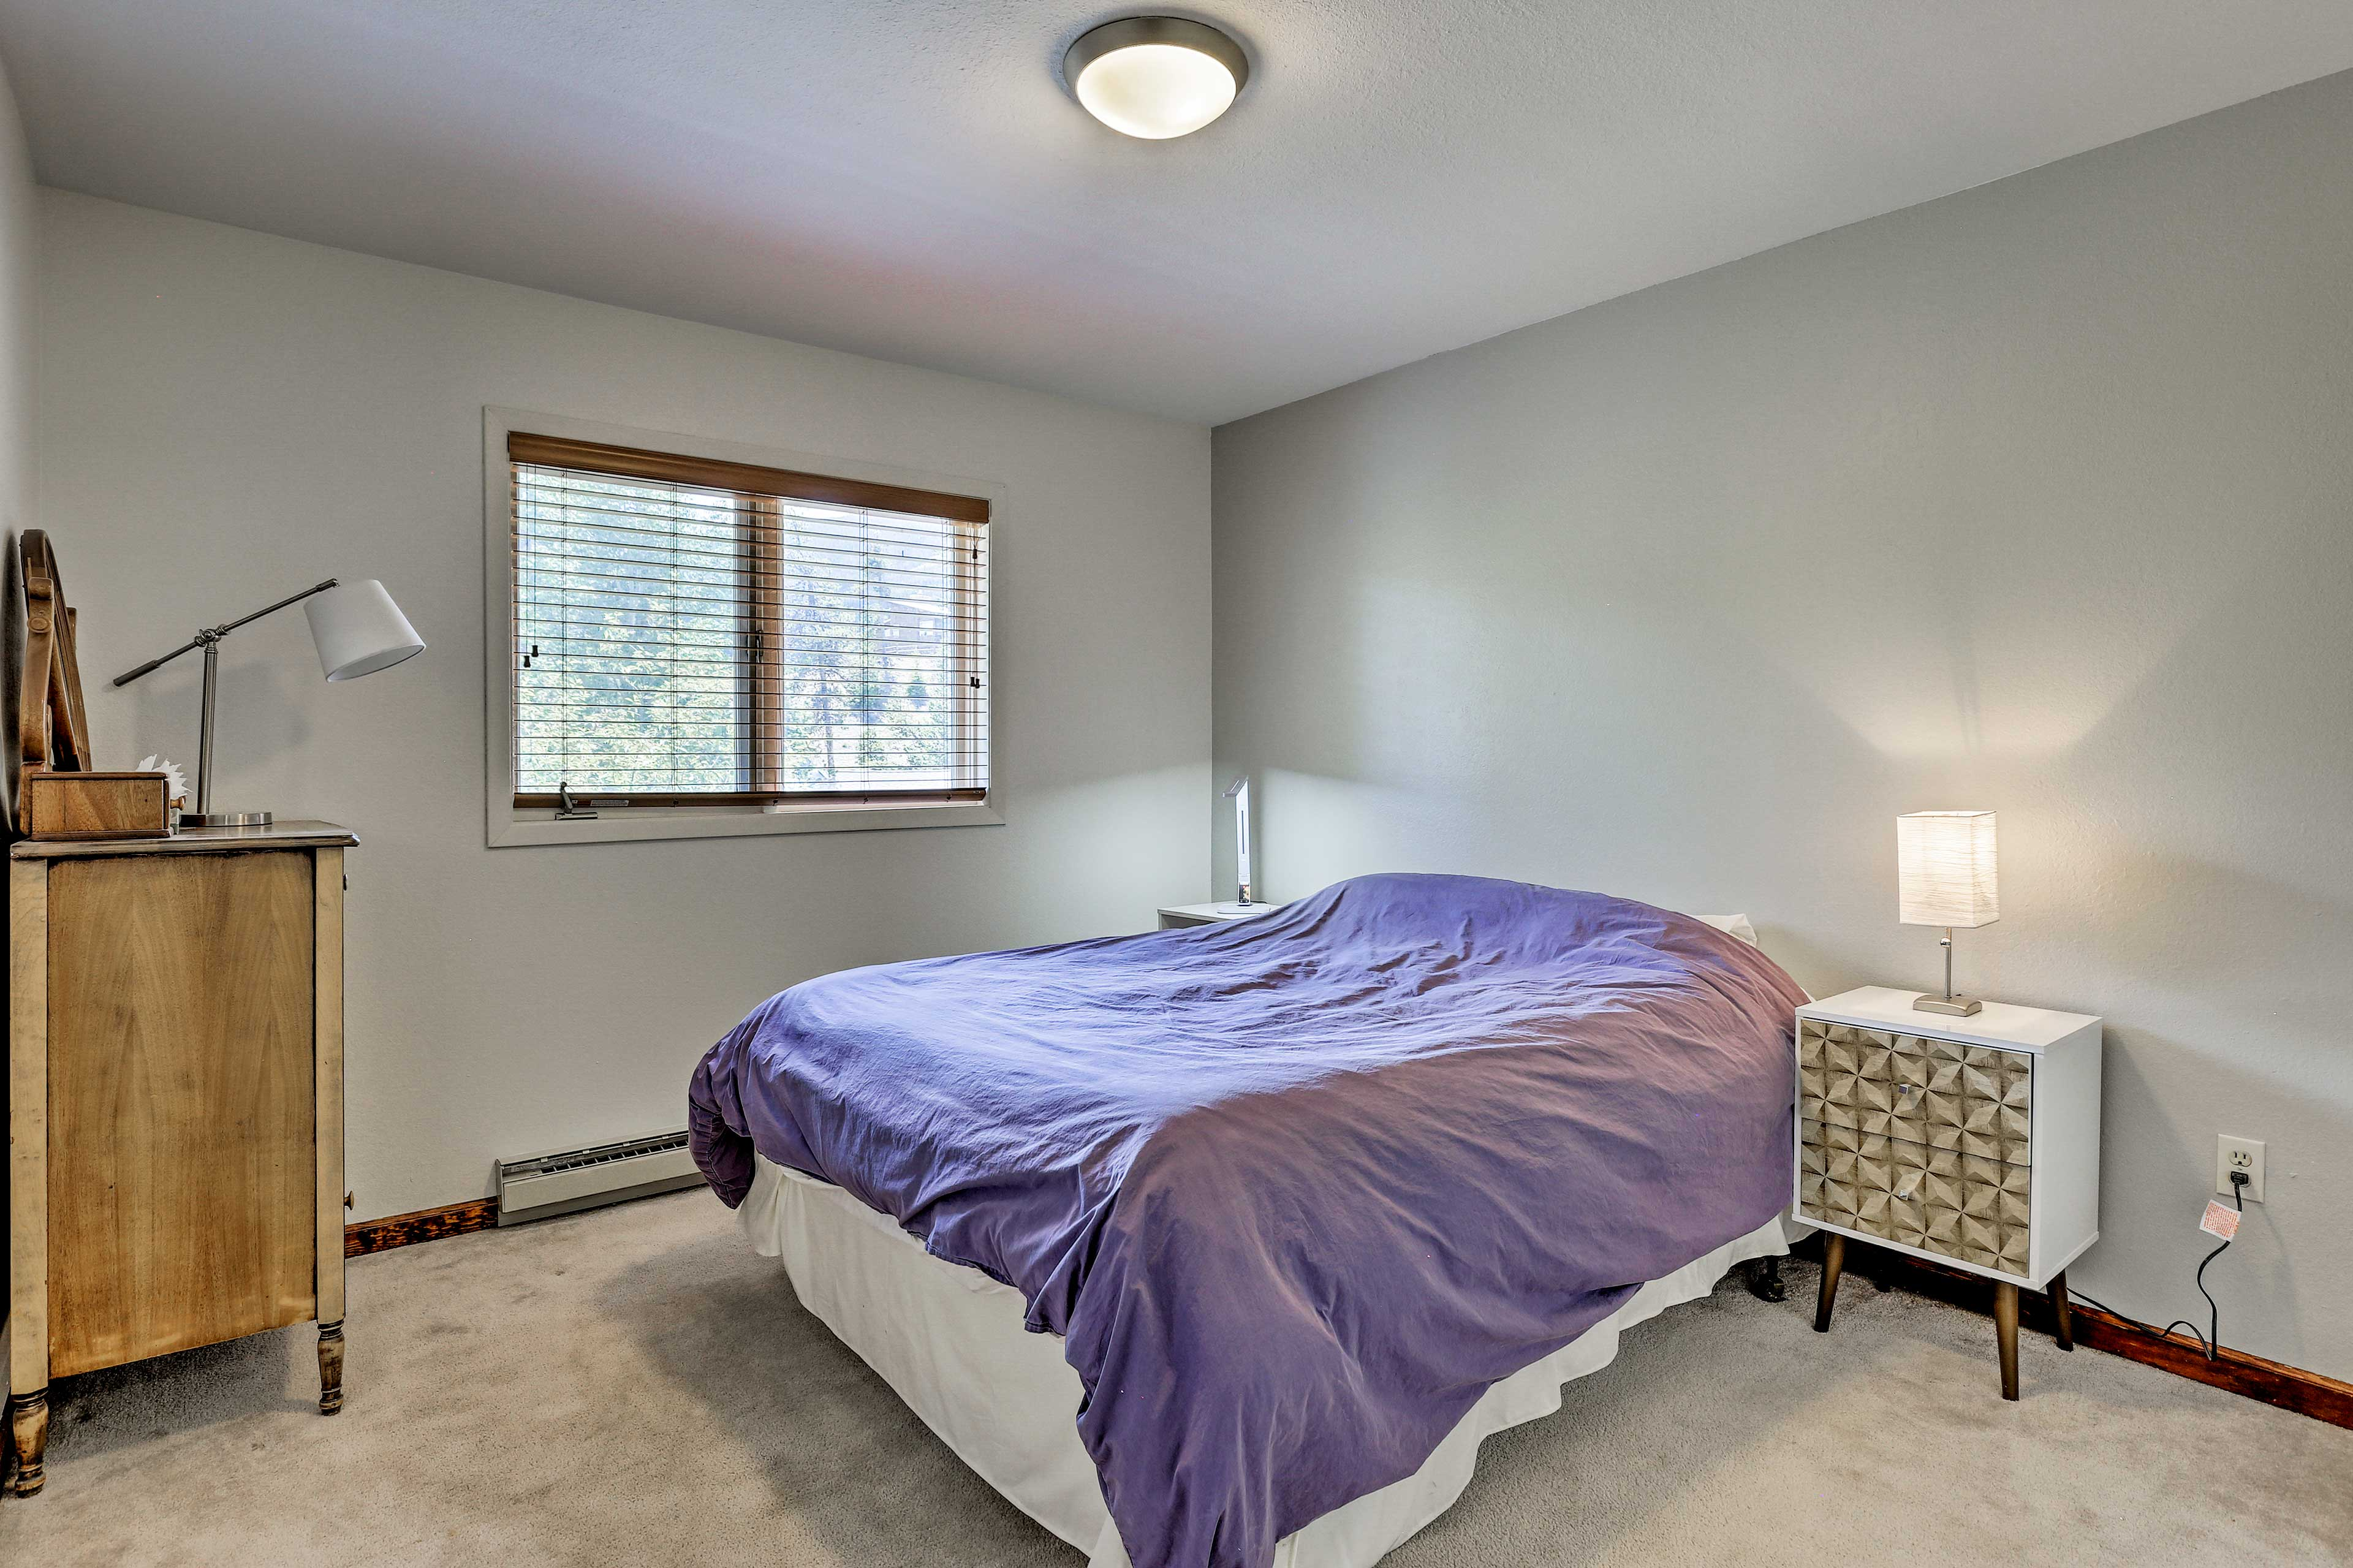 The third bedroom has a full bed for 2 guests to enjoy!